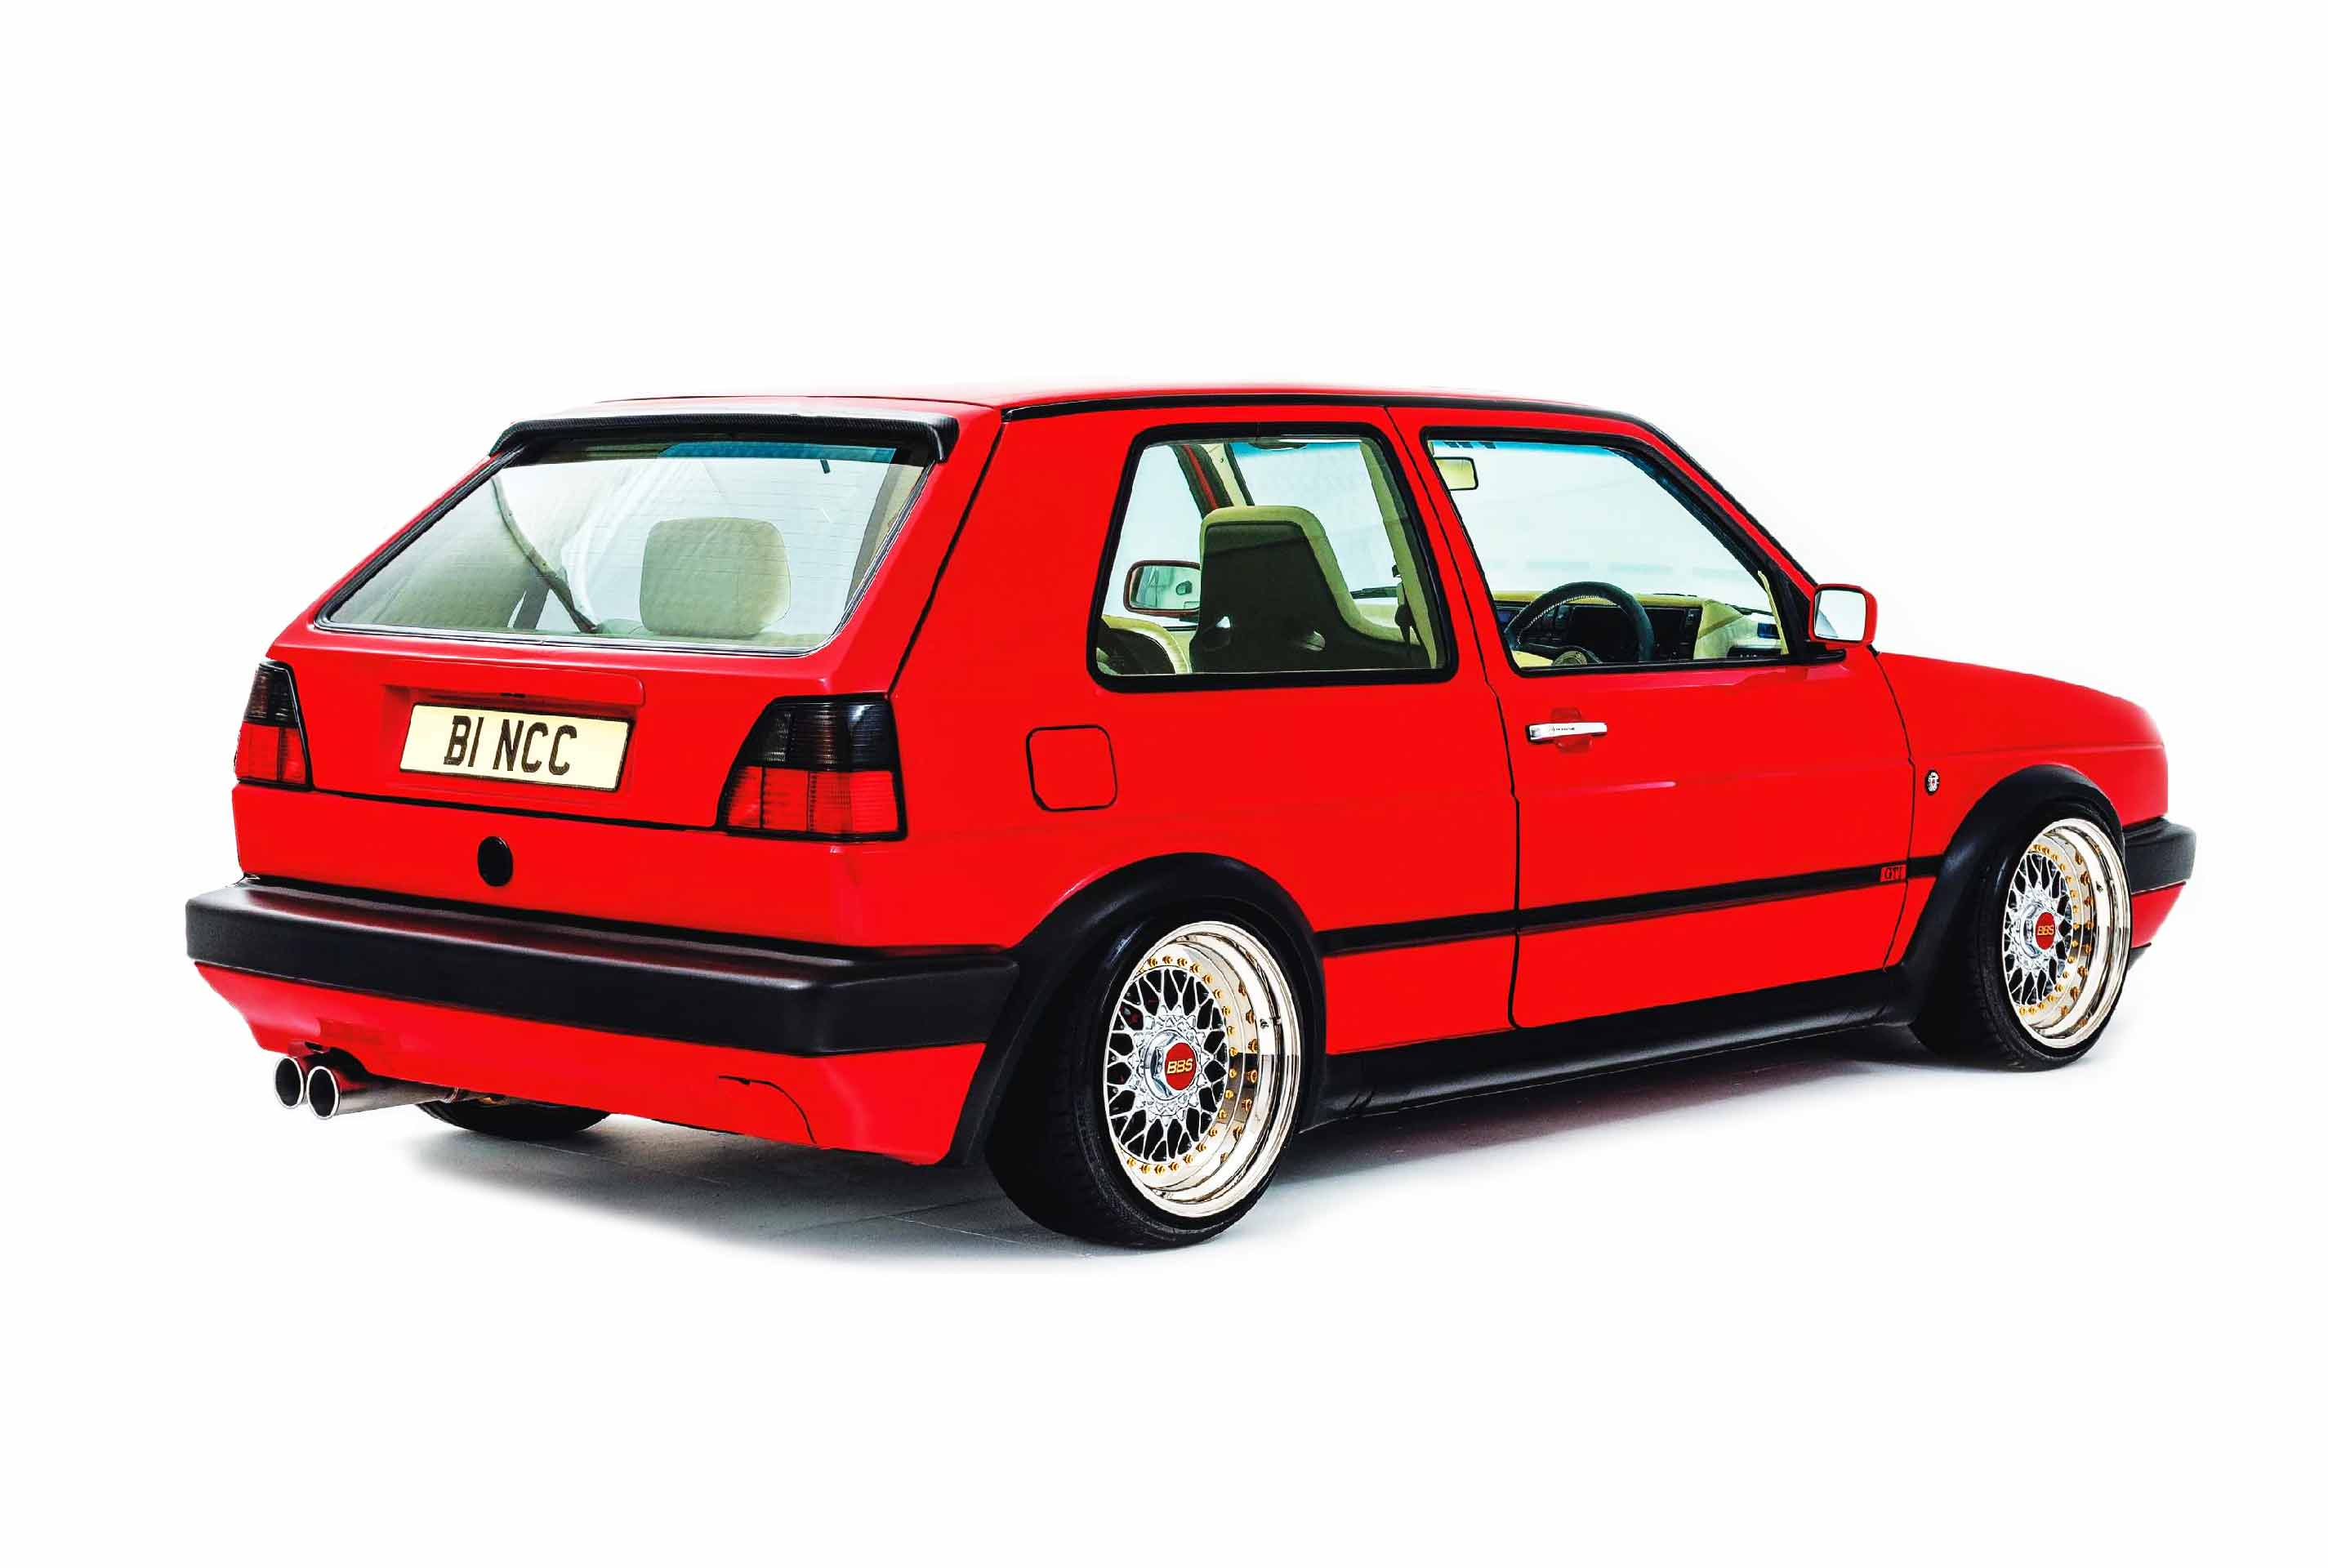 240bhp 1 8T 20vT-engined Volkswagen Golf Mk2 - Drive-My Blogs - Drive